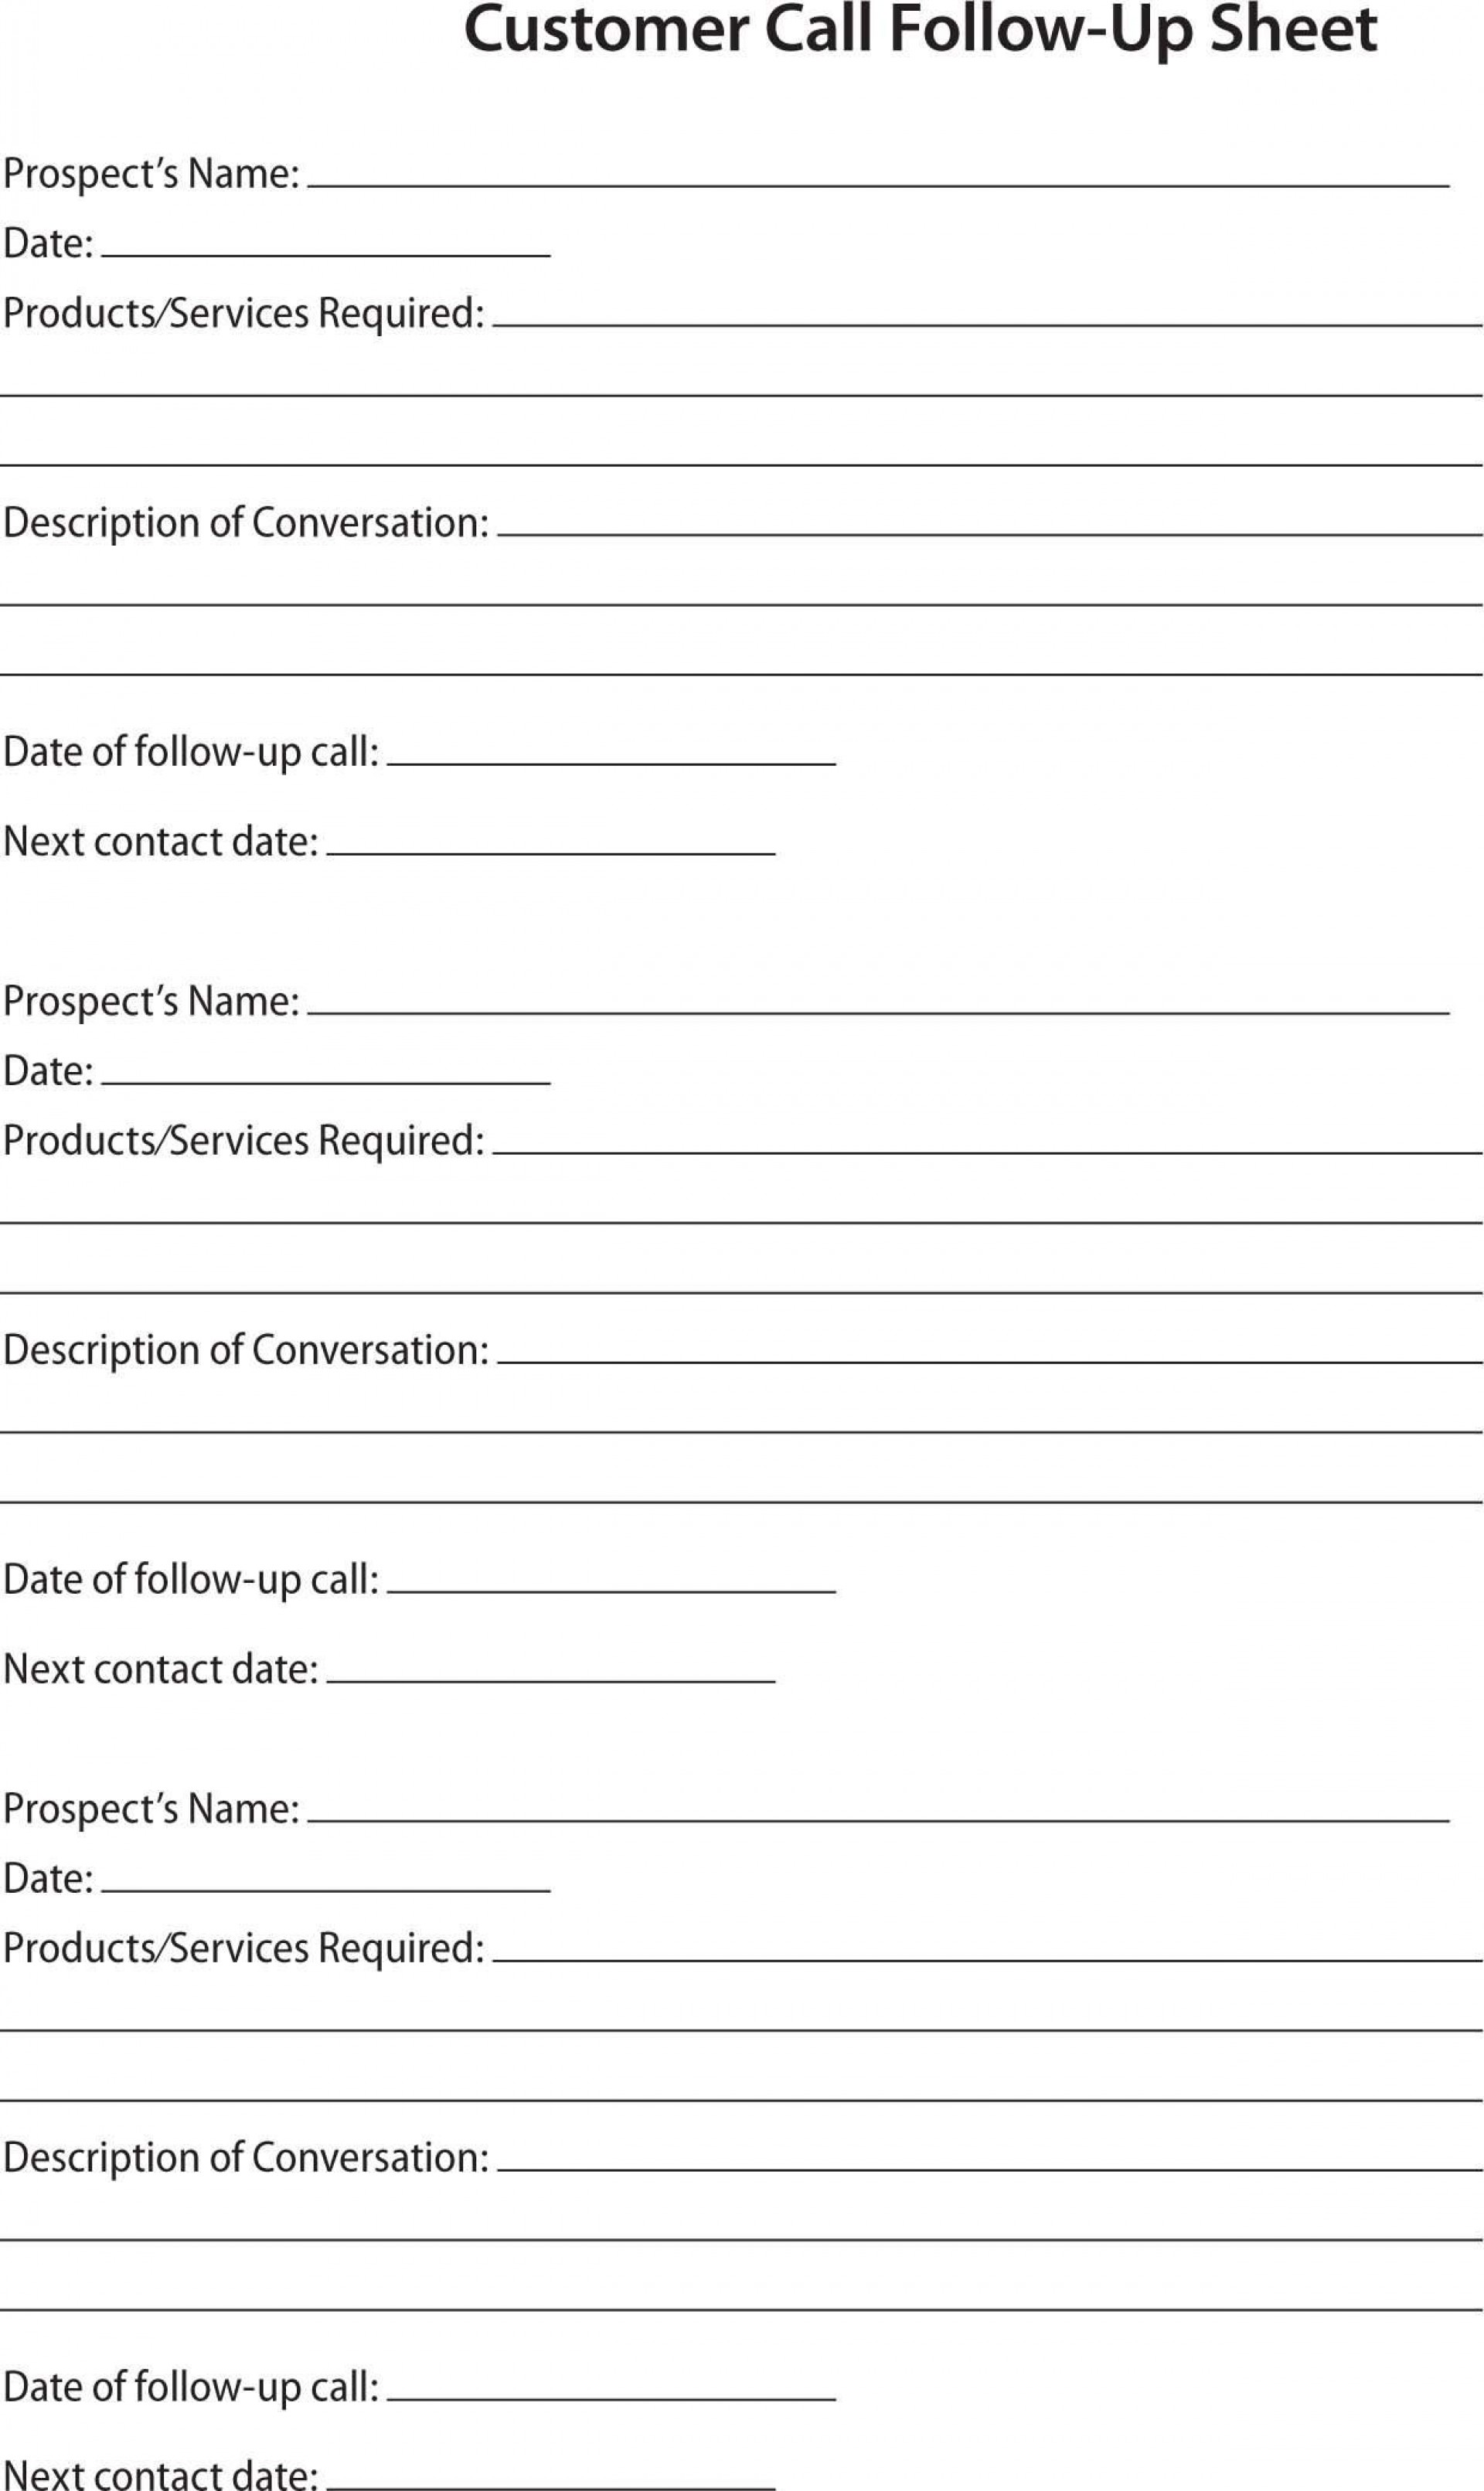 005 Exceptional Client Information Form Template Excel Inspiration 1920